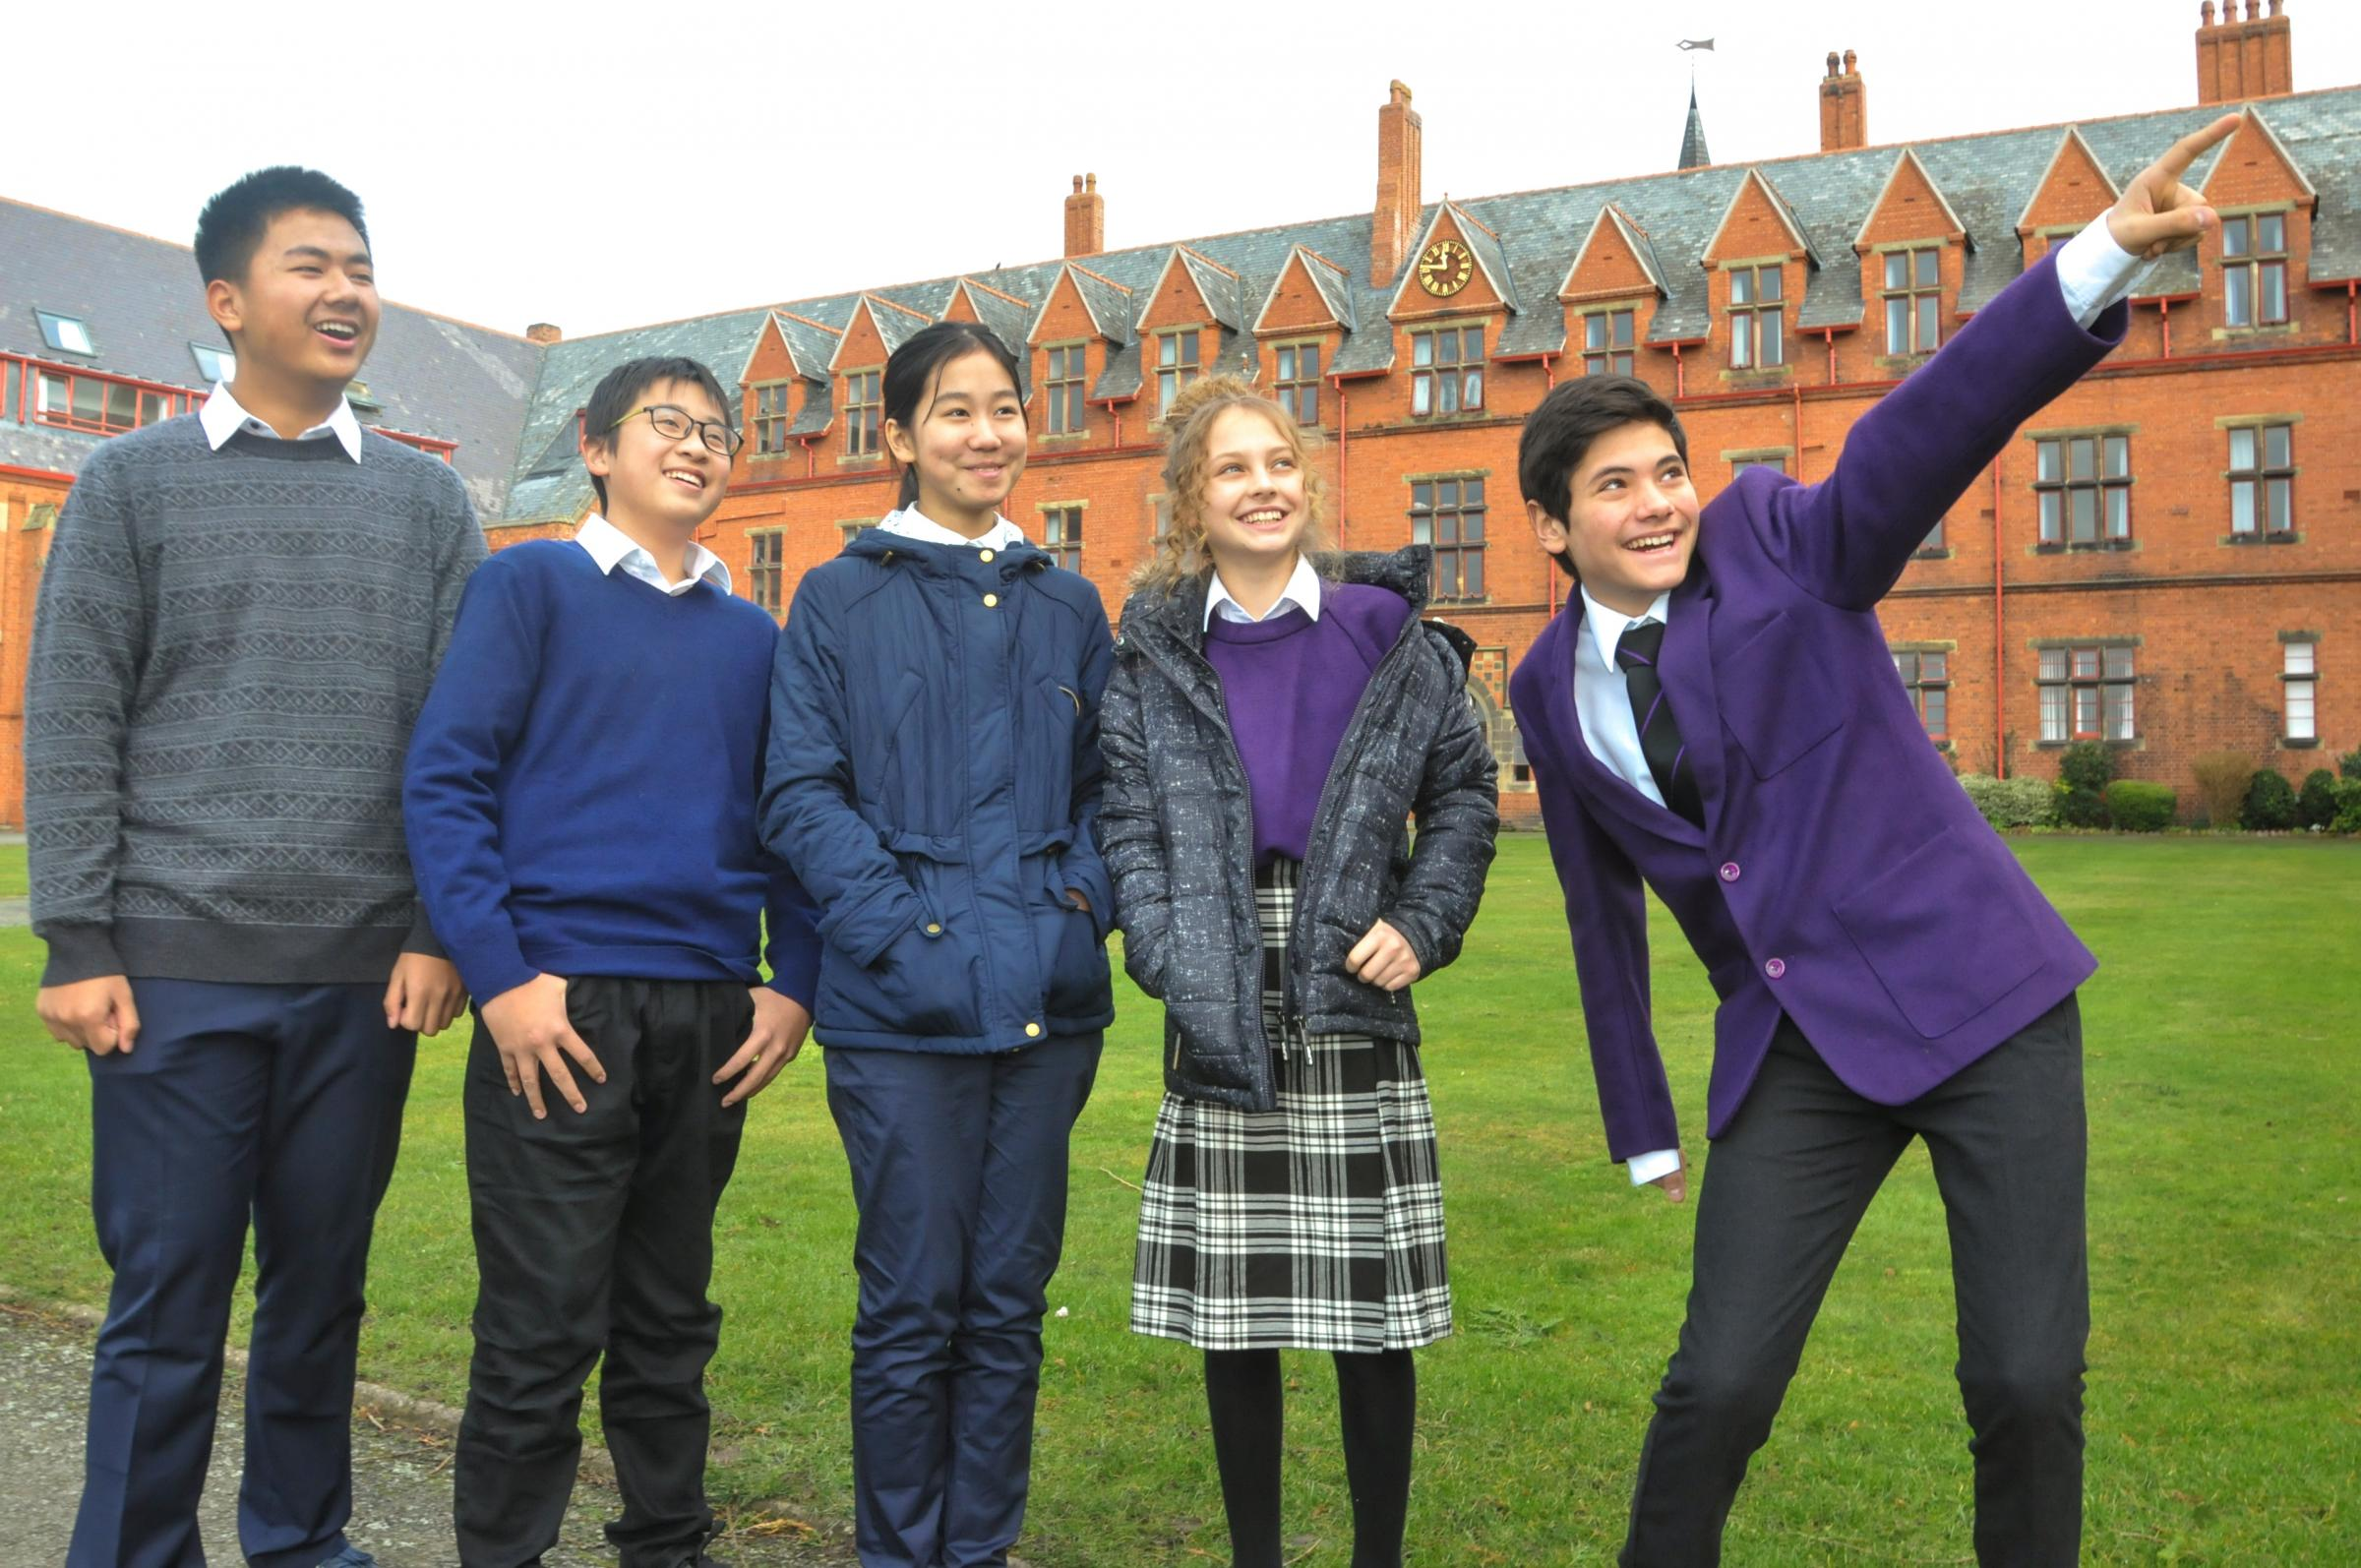 Ellesmere College, As part a national newspaper competition a group of Chinese students aged from 11 to 14 won the oppertunity to experience life in a UK boarding School. Picture Mark Li age 14, Ryan Sin g 13, CiCi Li 12 with year 8 & 9 buddies Gloria Lip